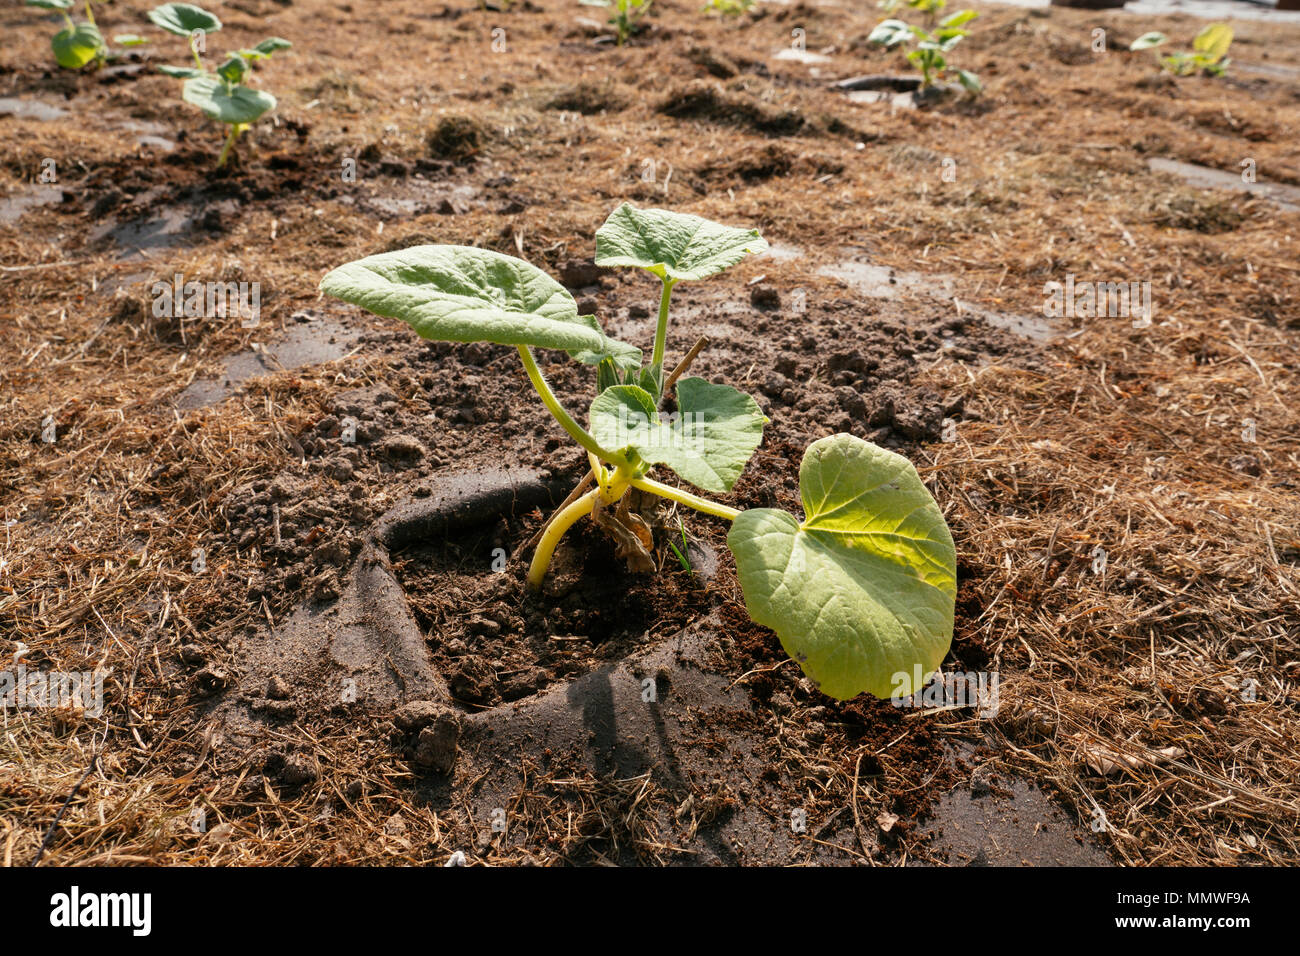 Red kuri squash plant in a garden plot with a biodegradable and ...